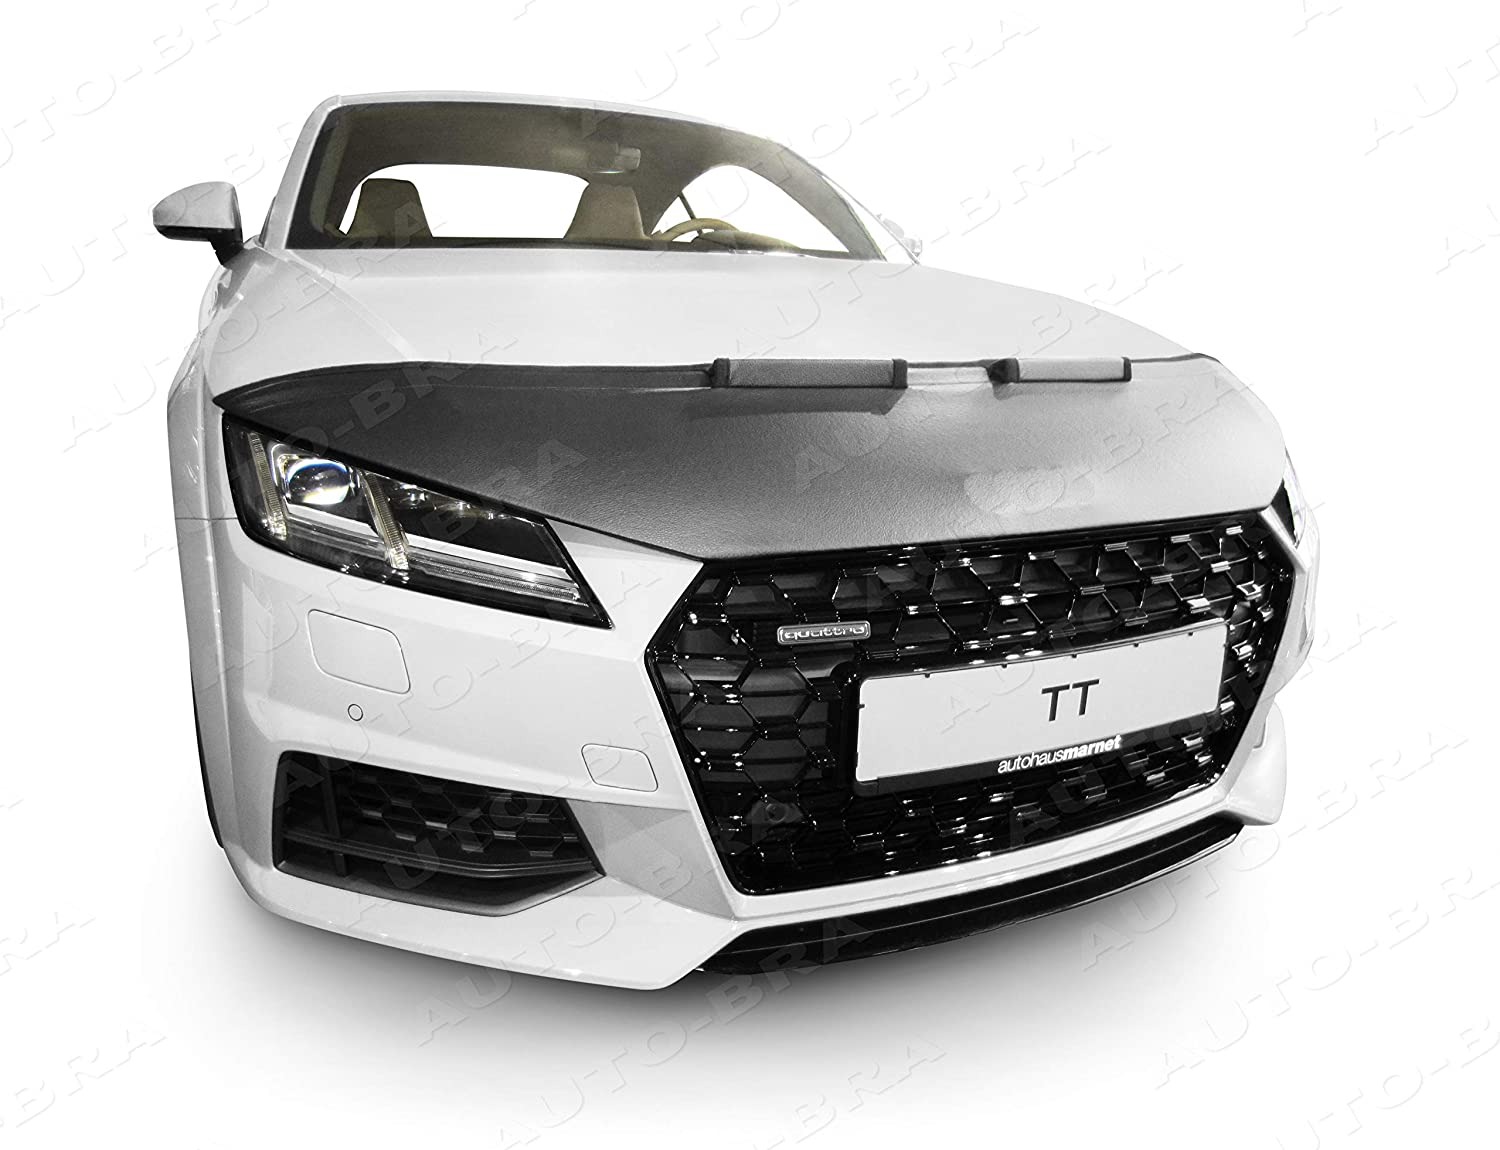 AB3-00265 Purchase CAR HOOD BRA for Audi Excellence TT End Nose Front 2014 since FV